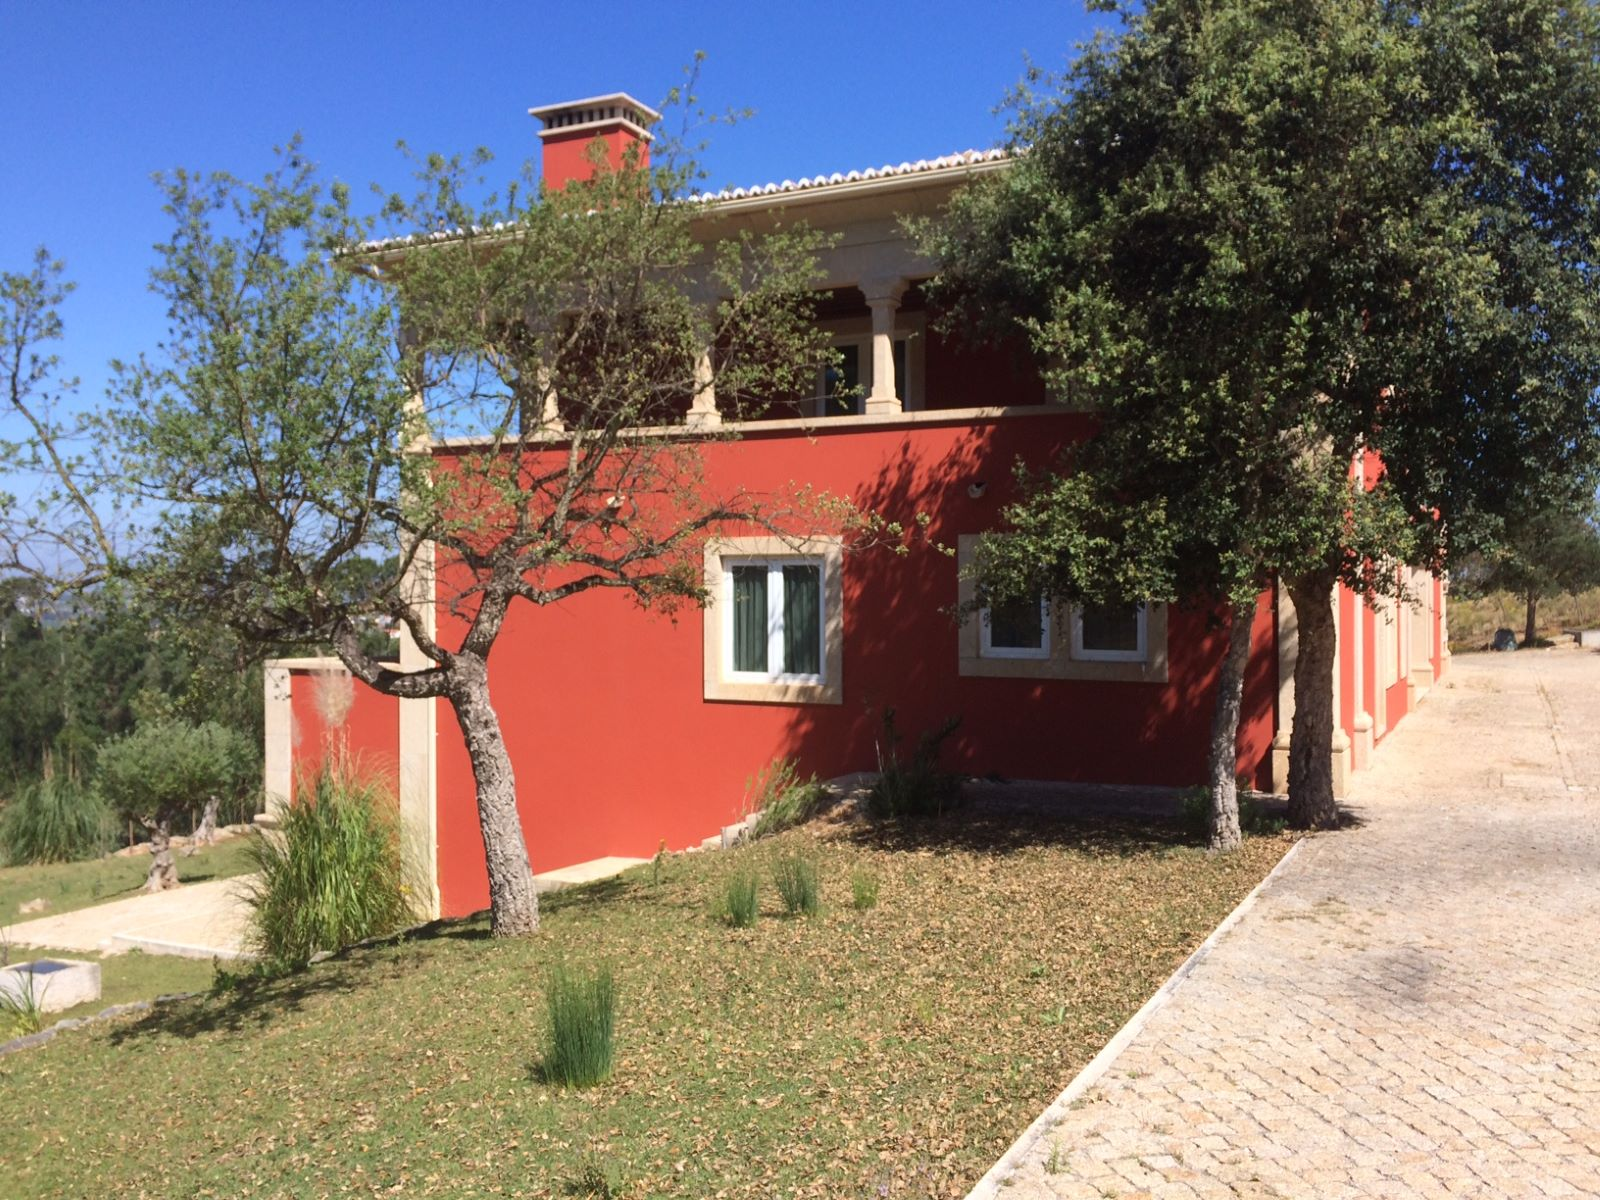 5 BEDROOM COUNTRY HOUSE WITH VINEYARD AND WOODS AT 50 MIN FROM LISBON